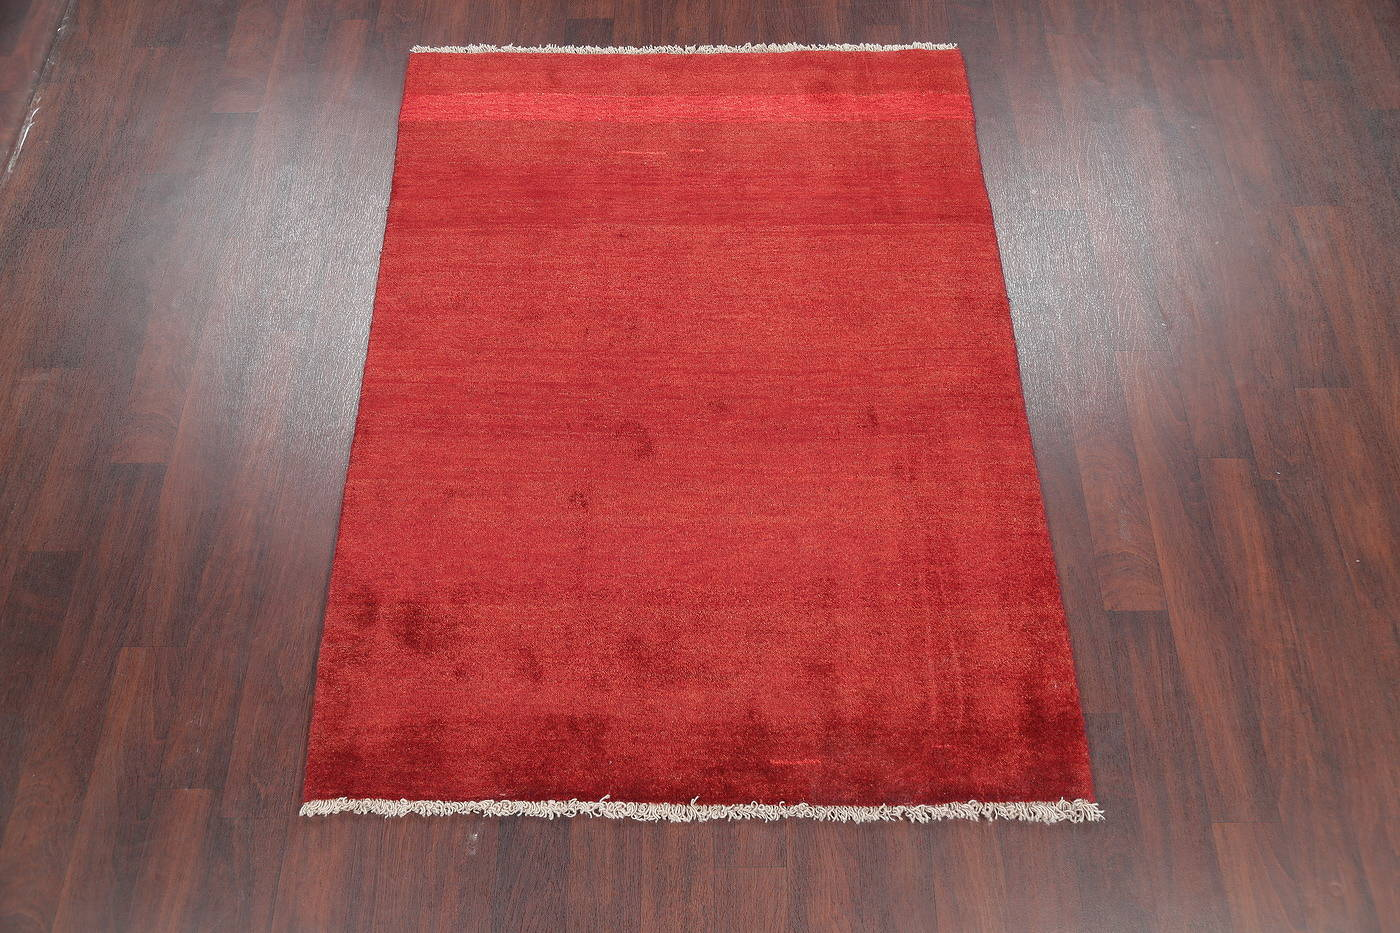 Hand-Knotted Red Solid Gabbeh Persian Area Wool Rug 5x6